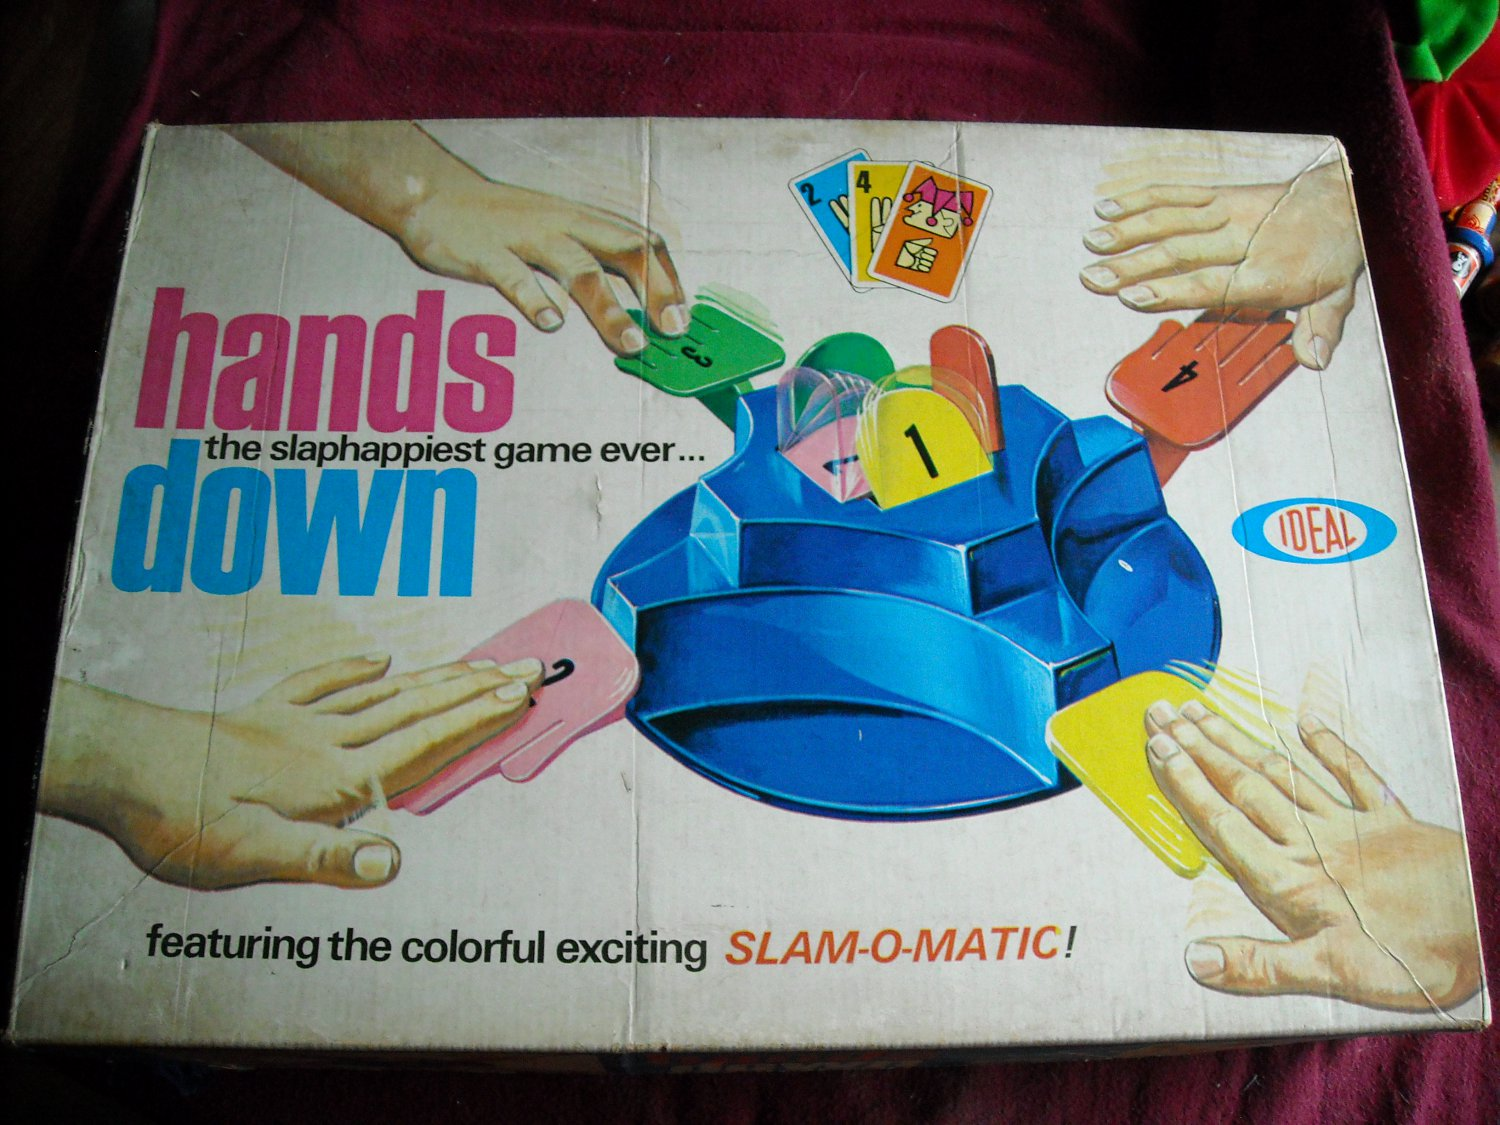 Hands Down Game 1964 Ideal with SLAM-O-MATIC All Parts are There